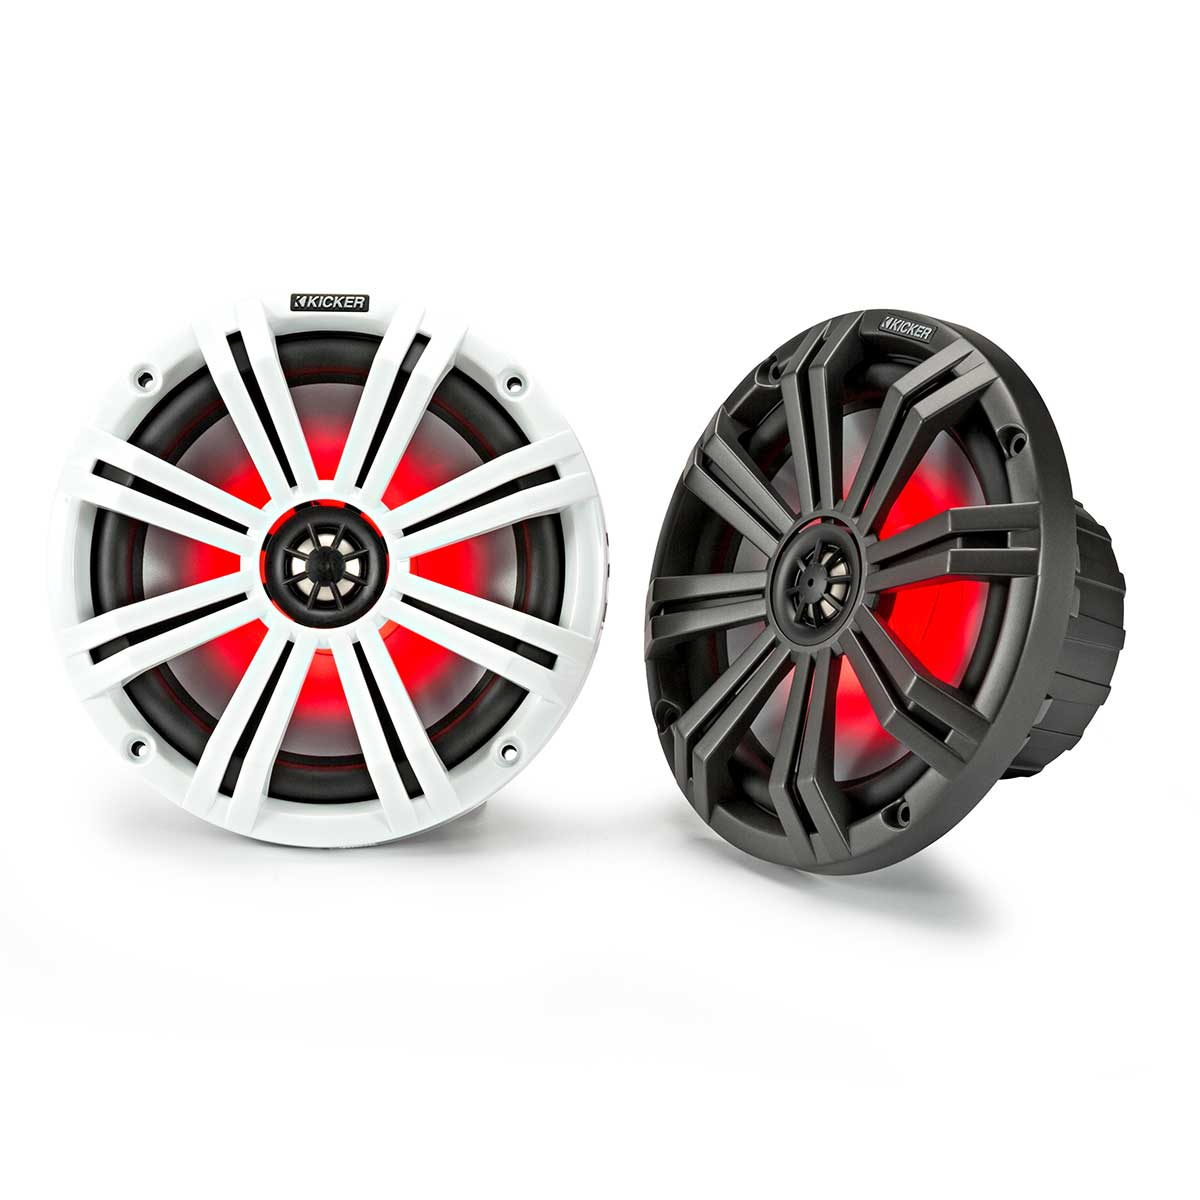 Kicker KM8 8 Inch Marine Grade Coaxial Speakers with LEDs White & Charcoal Grilles 4 Ohm